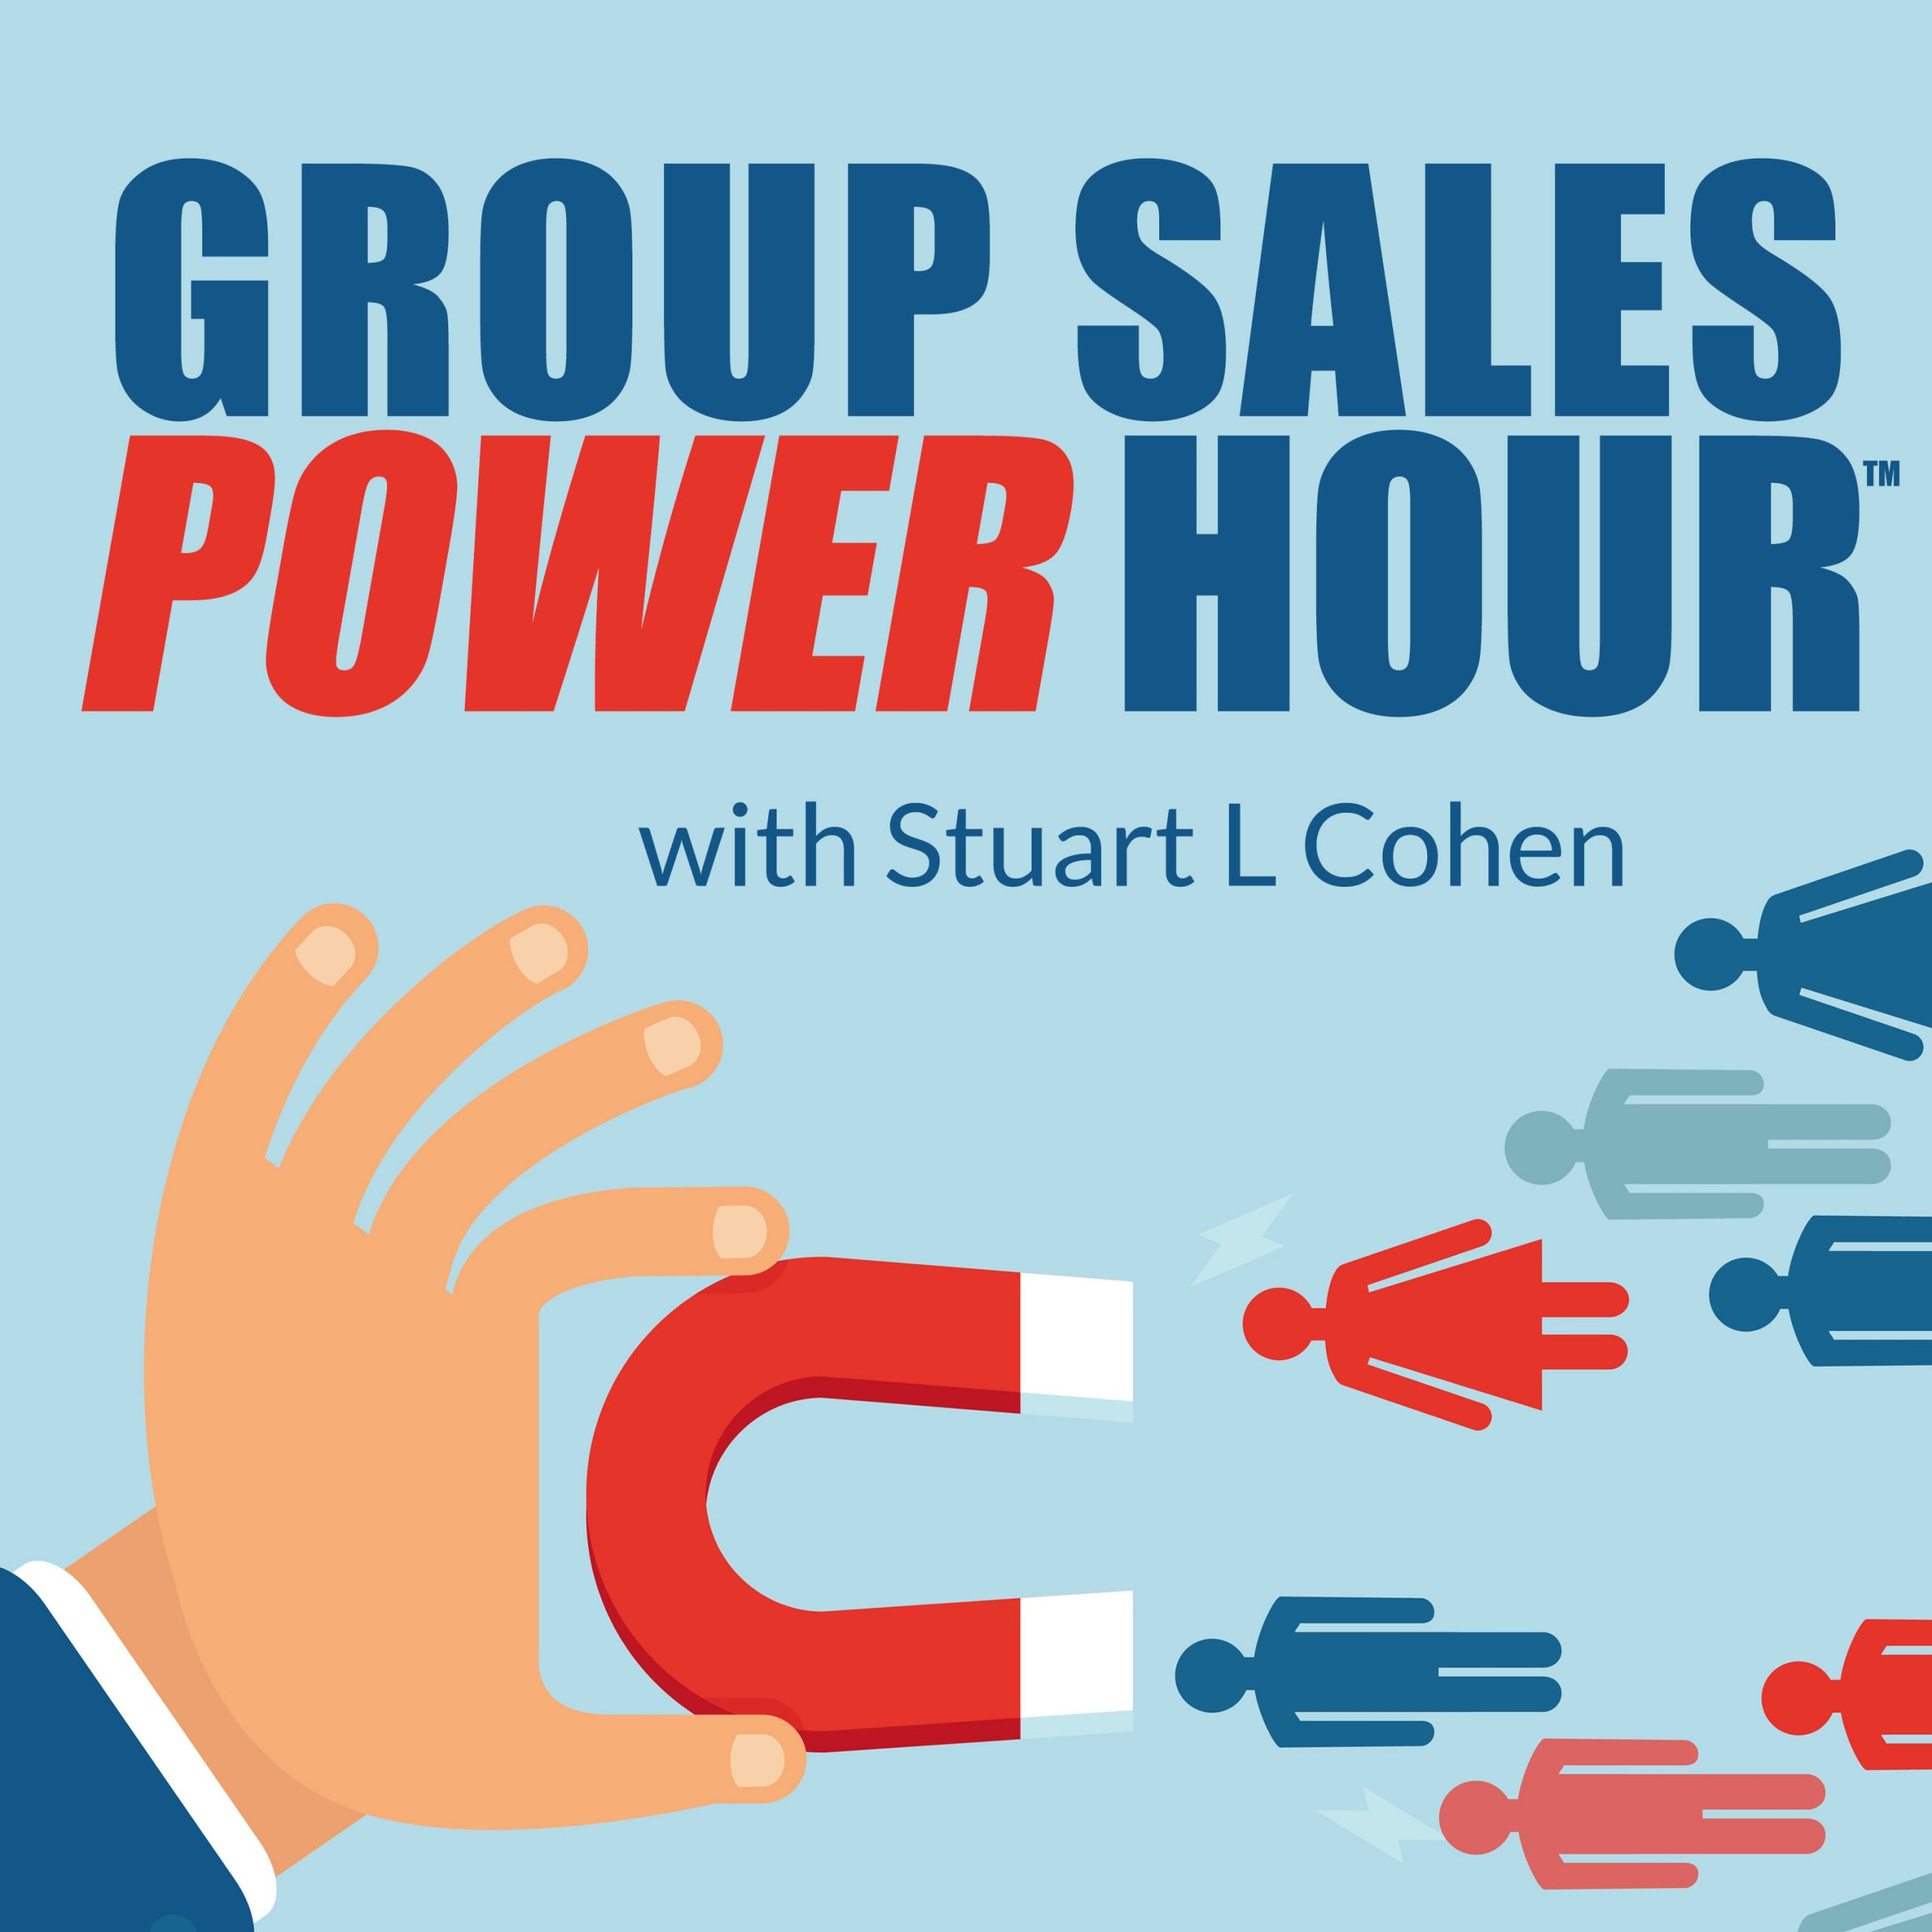 Group Sales Power Hour: Here's How To Maximize Your Profile In Order To Receive More Group Leads